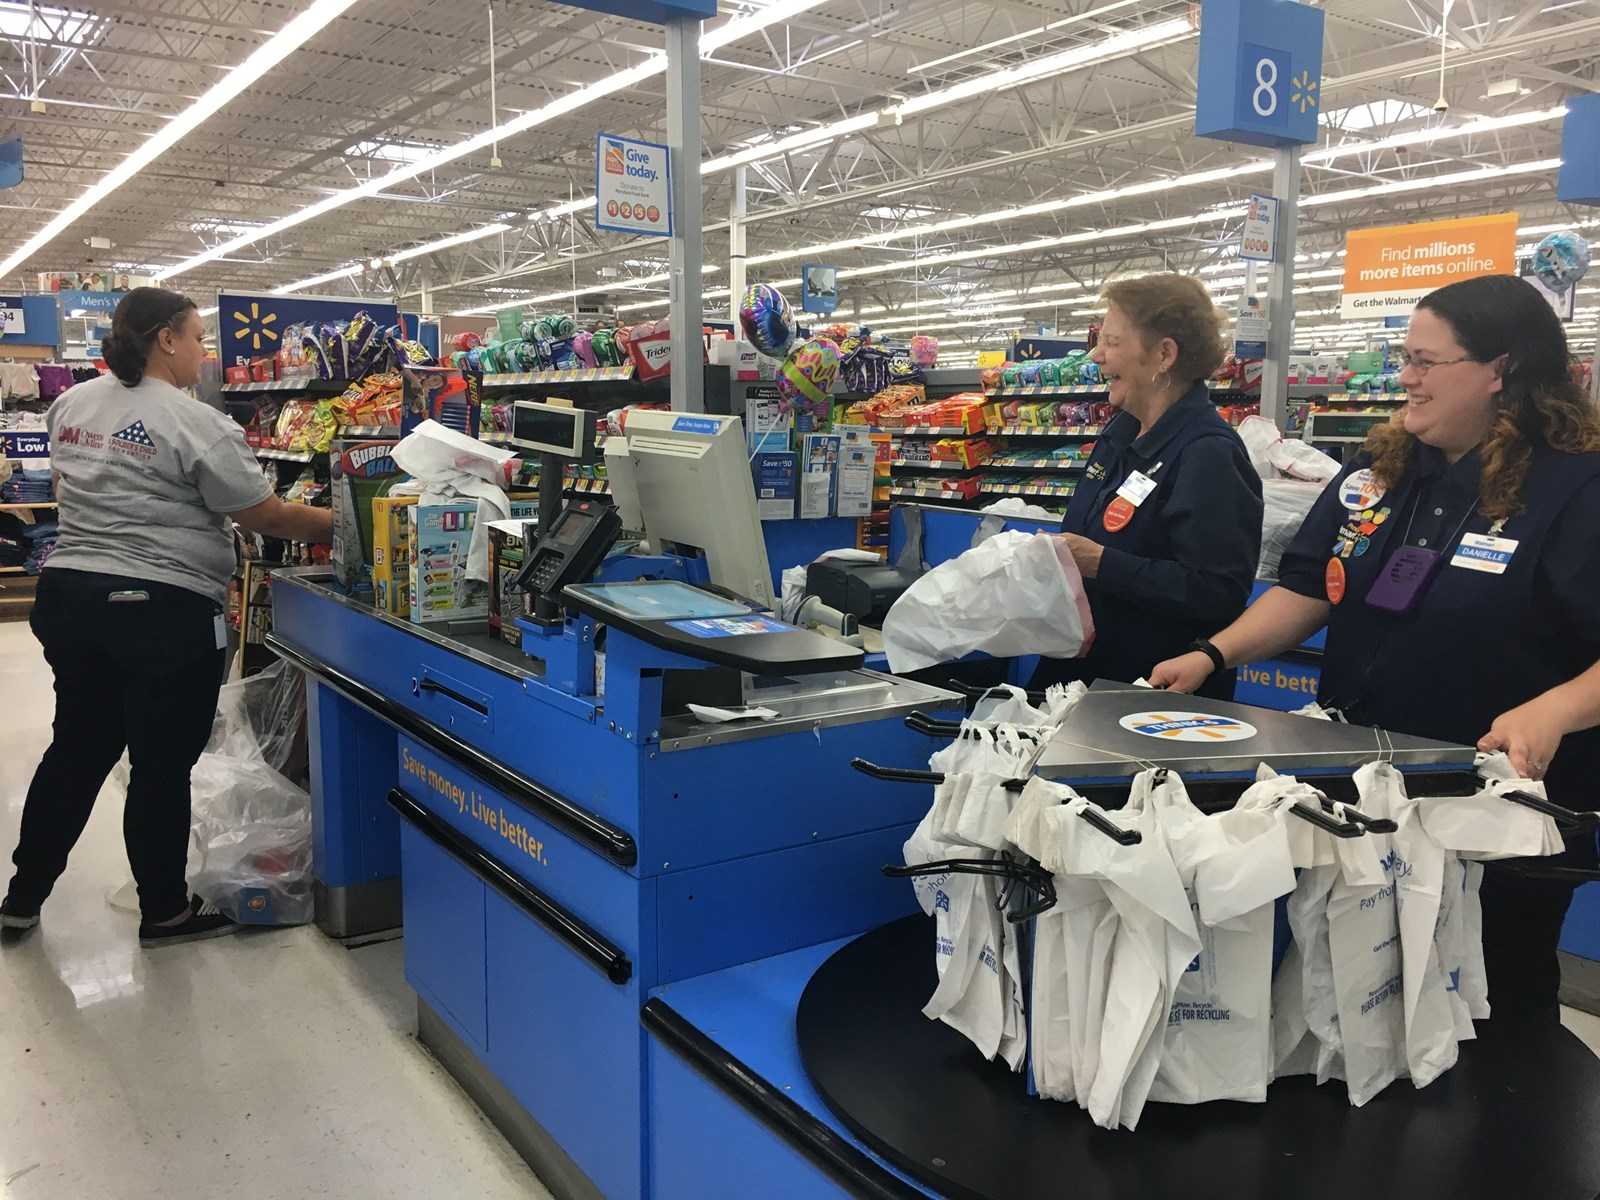 Walmart Employees Kerry Hathaway And Danielle Timon Help Ring Up The Presents For A Soldiers Child Friday In Hanover Organization Donates Birthday